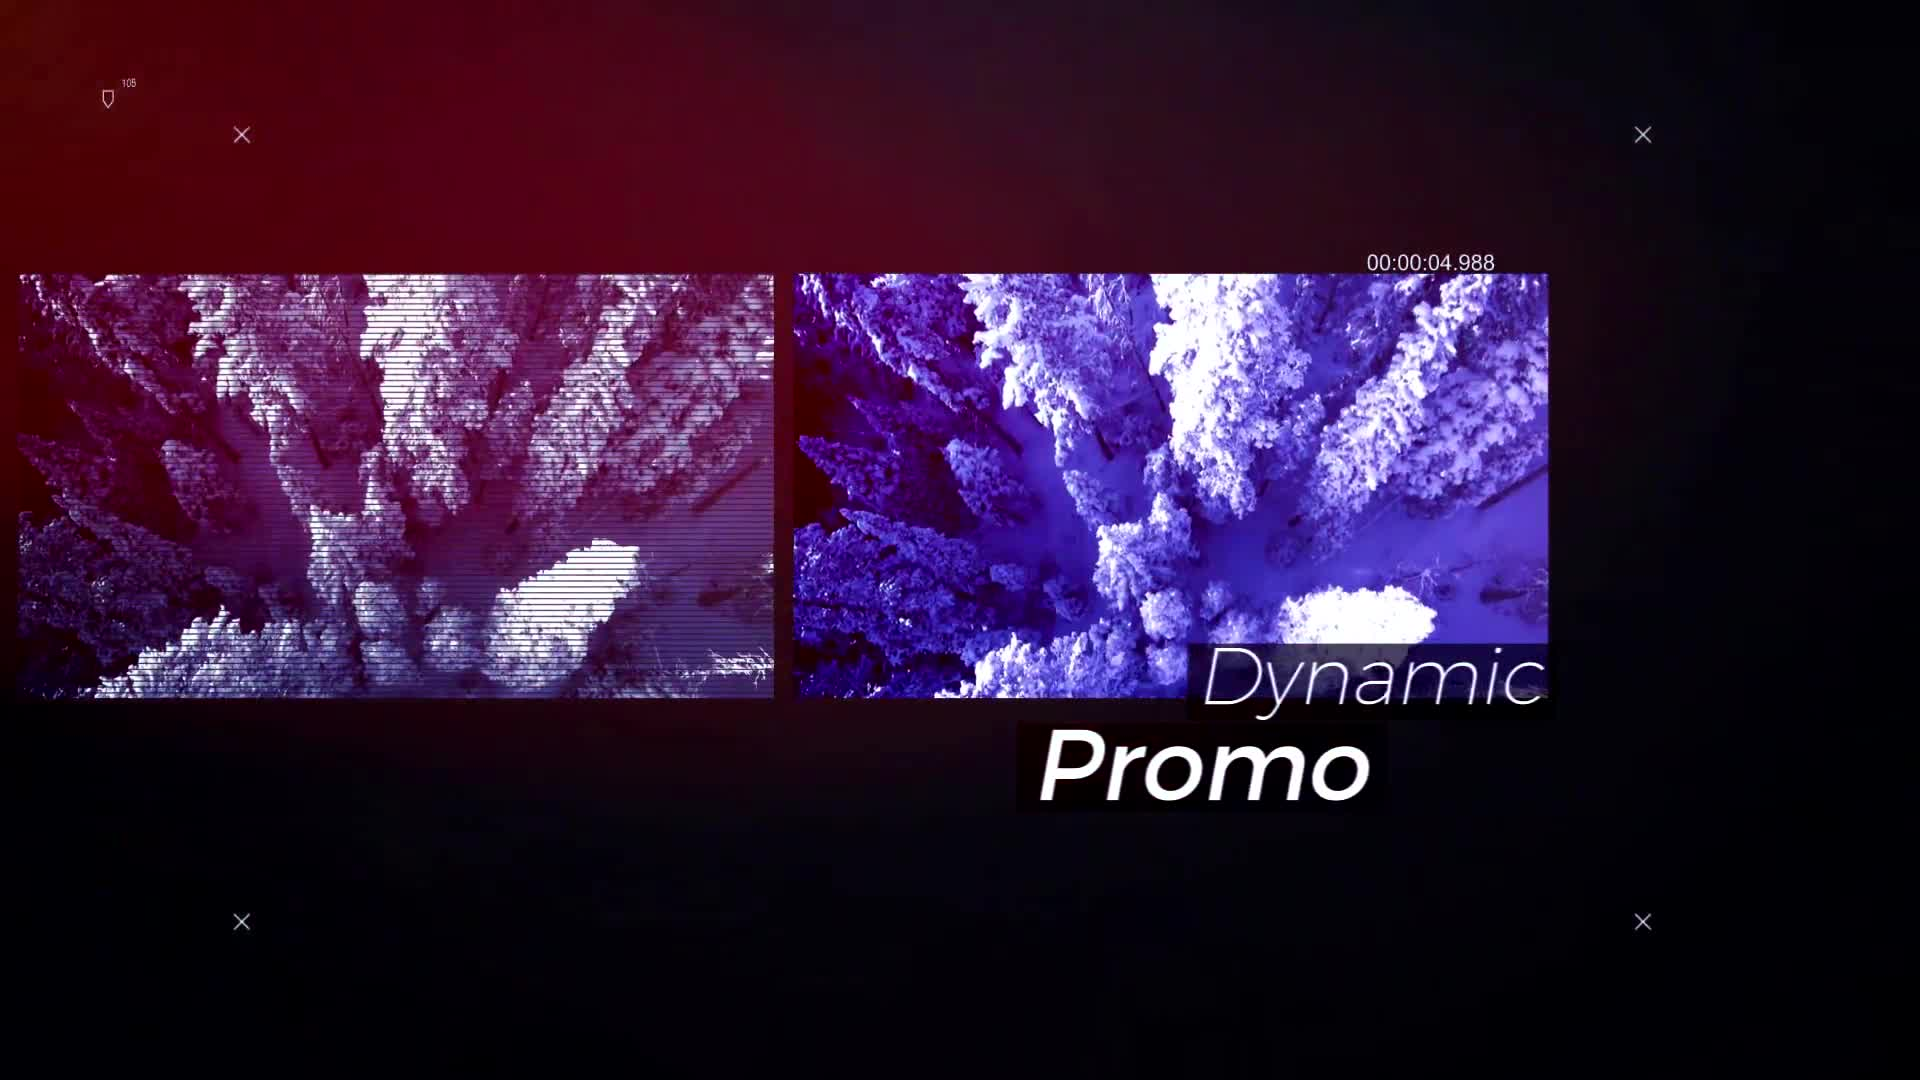 Dynamic Promo - Download Videohive 18085881